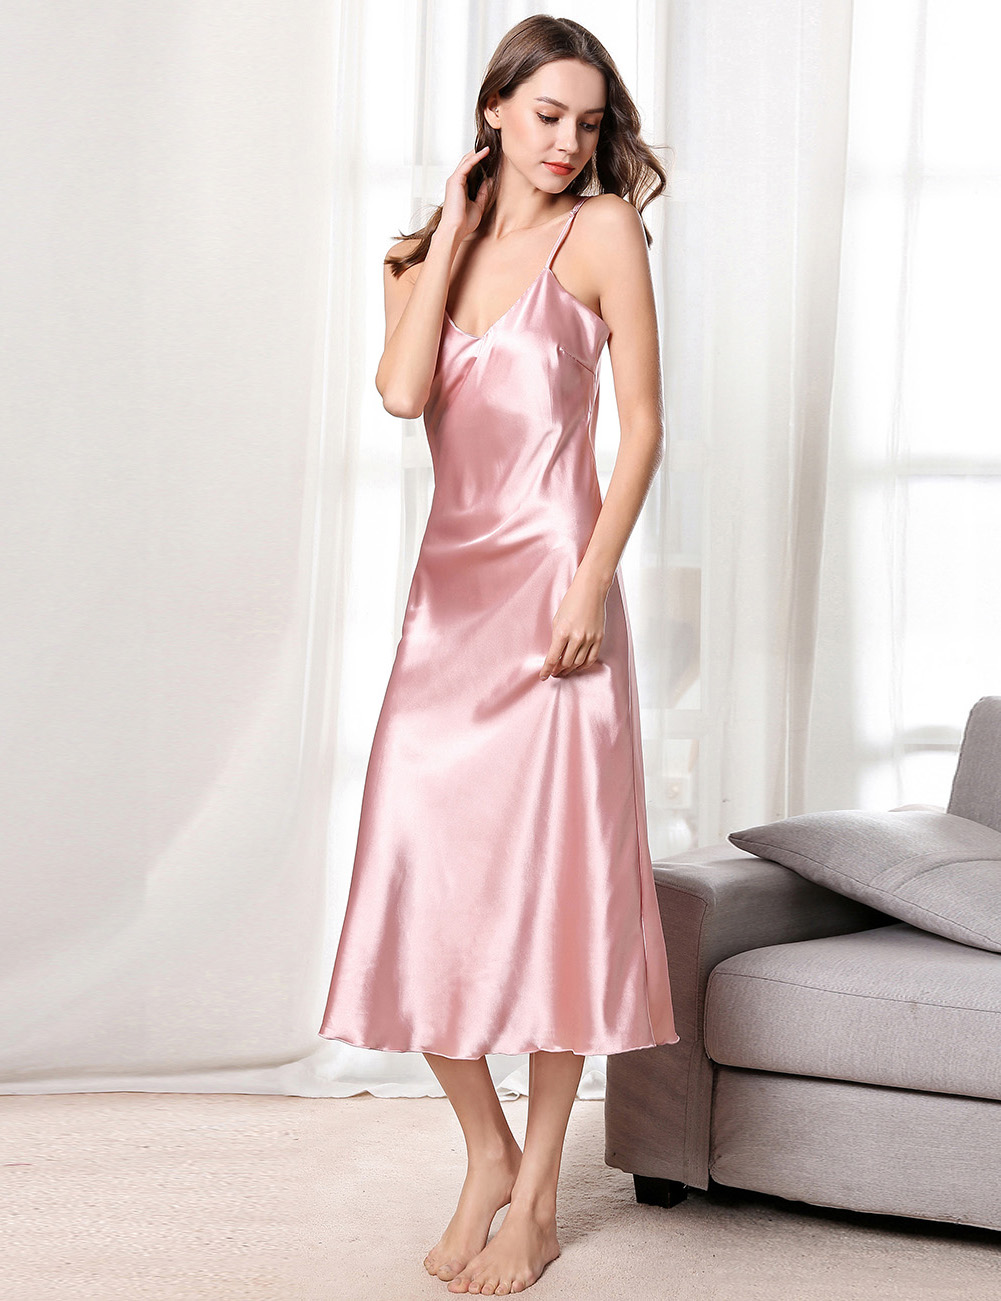 //cdn.affectcloud.com/feelingirldress/upload/imgs/2019-06-28/SY190152-PK1/SY190152-PK1-4.jpg